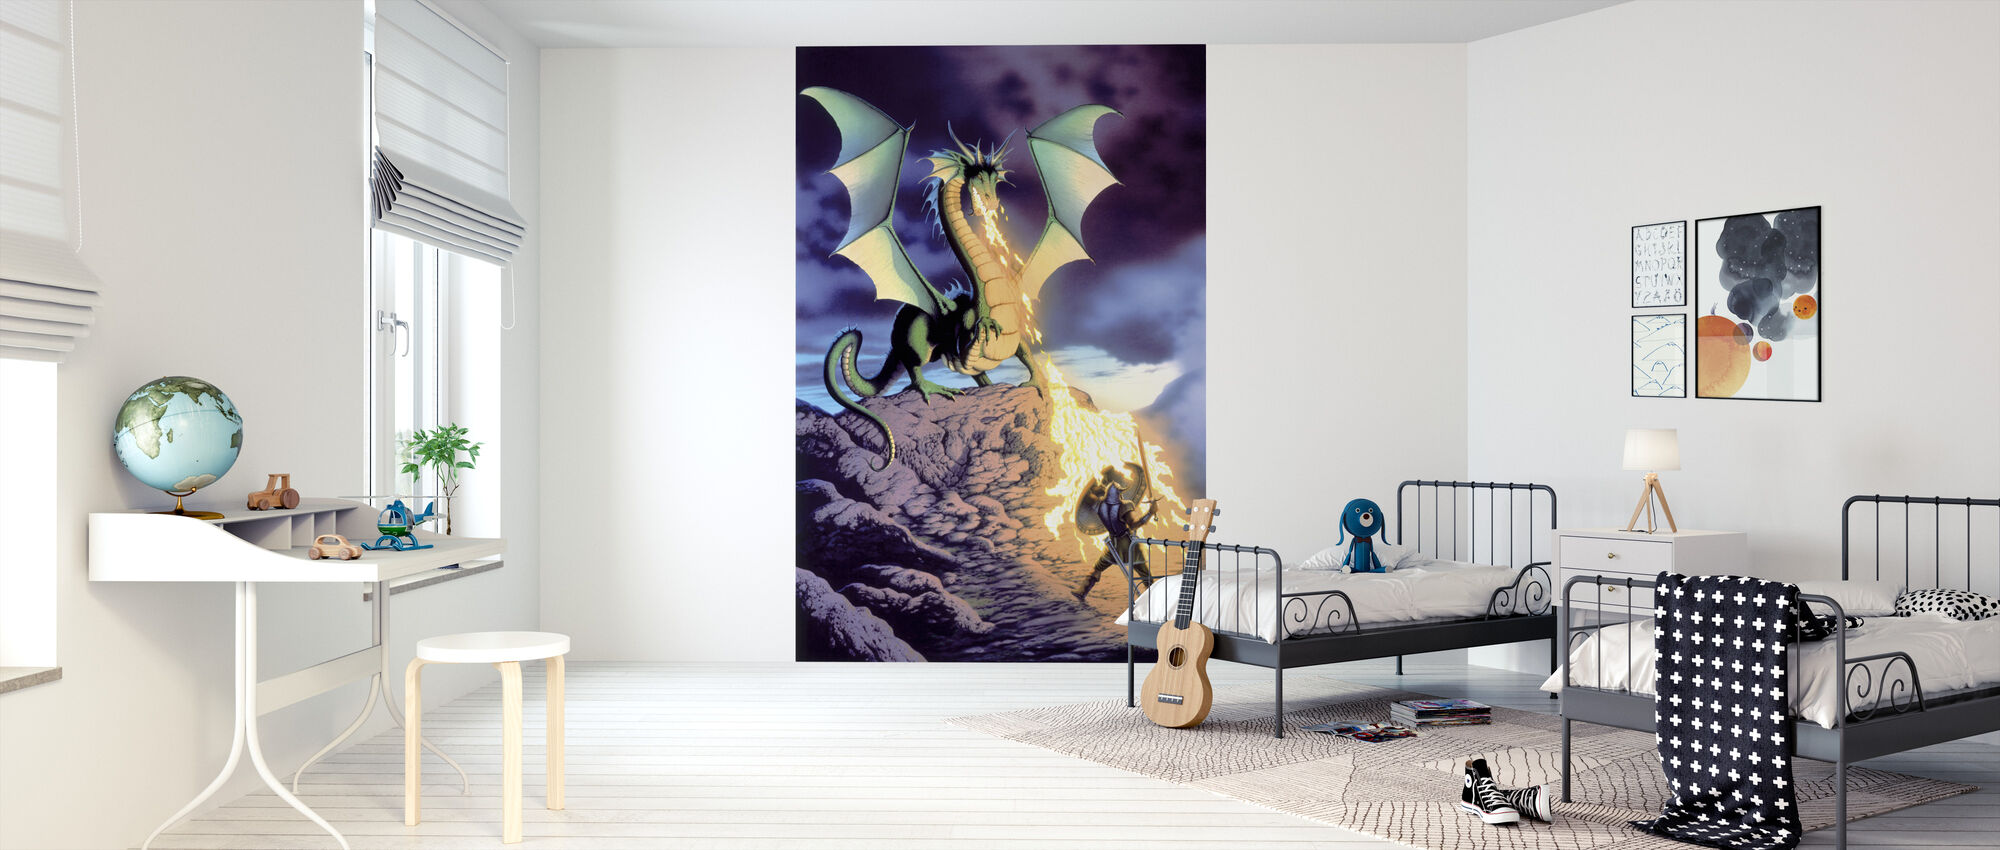 Dragon Warrior - Wallpaper - Kids Room